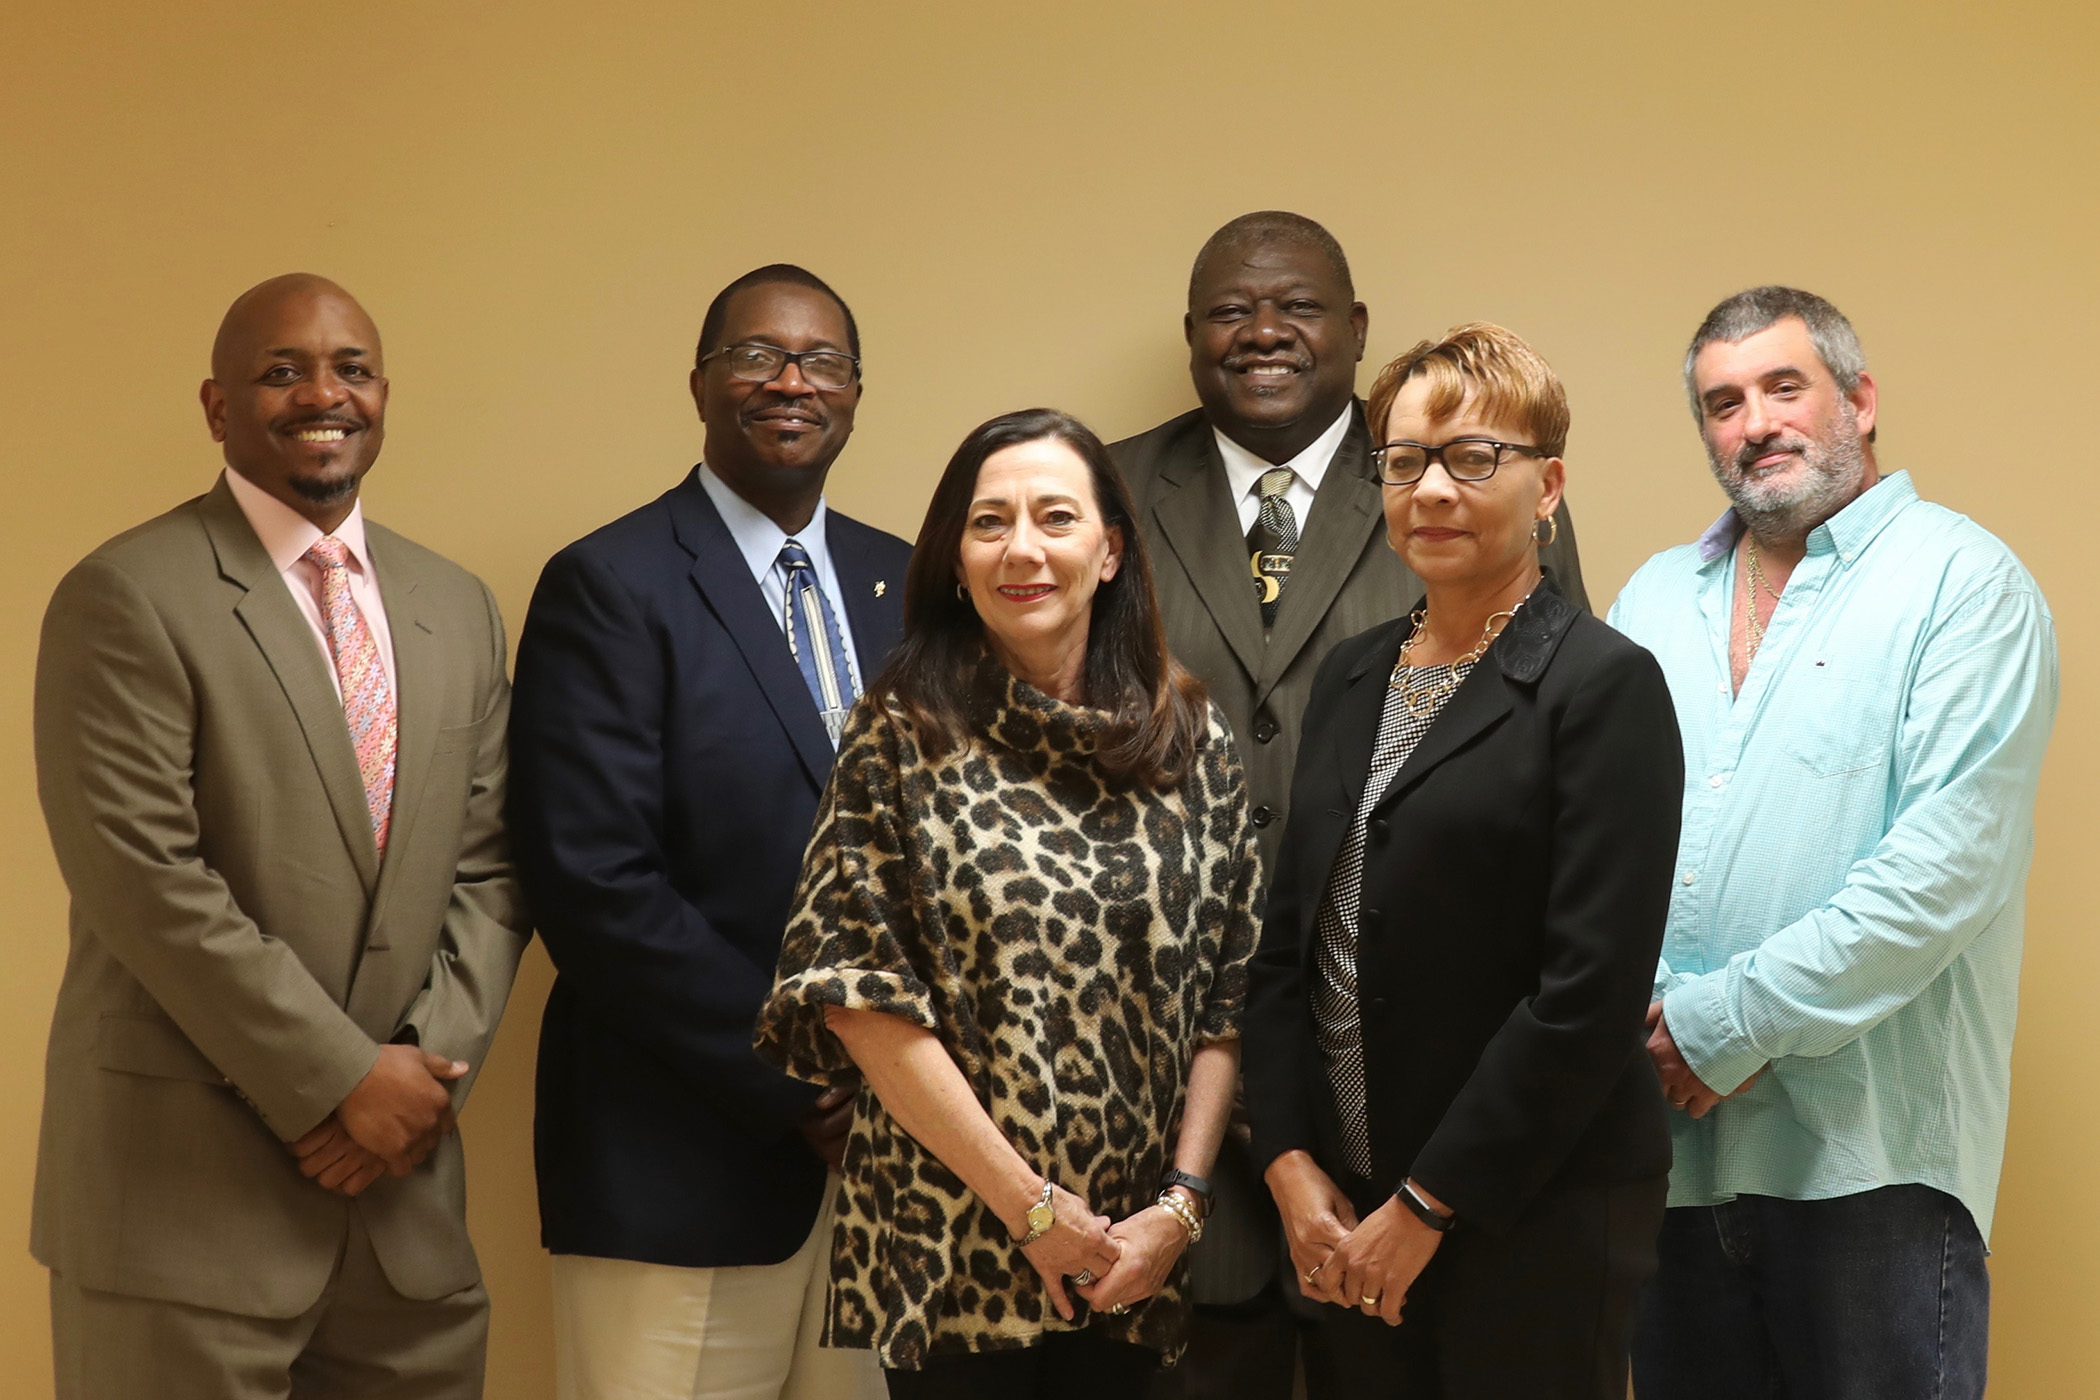 The Quitman School District School Board of Trustees poses with Dr. Holloway.